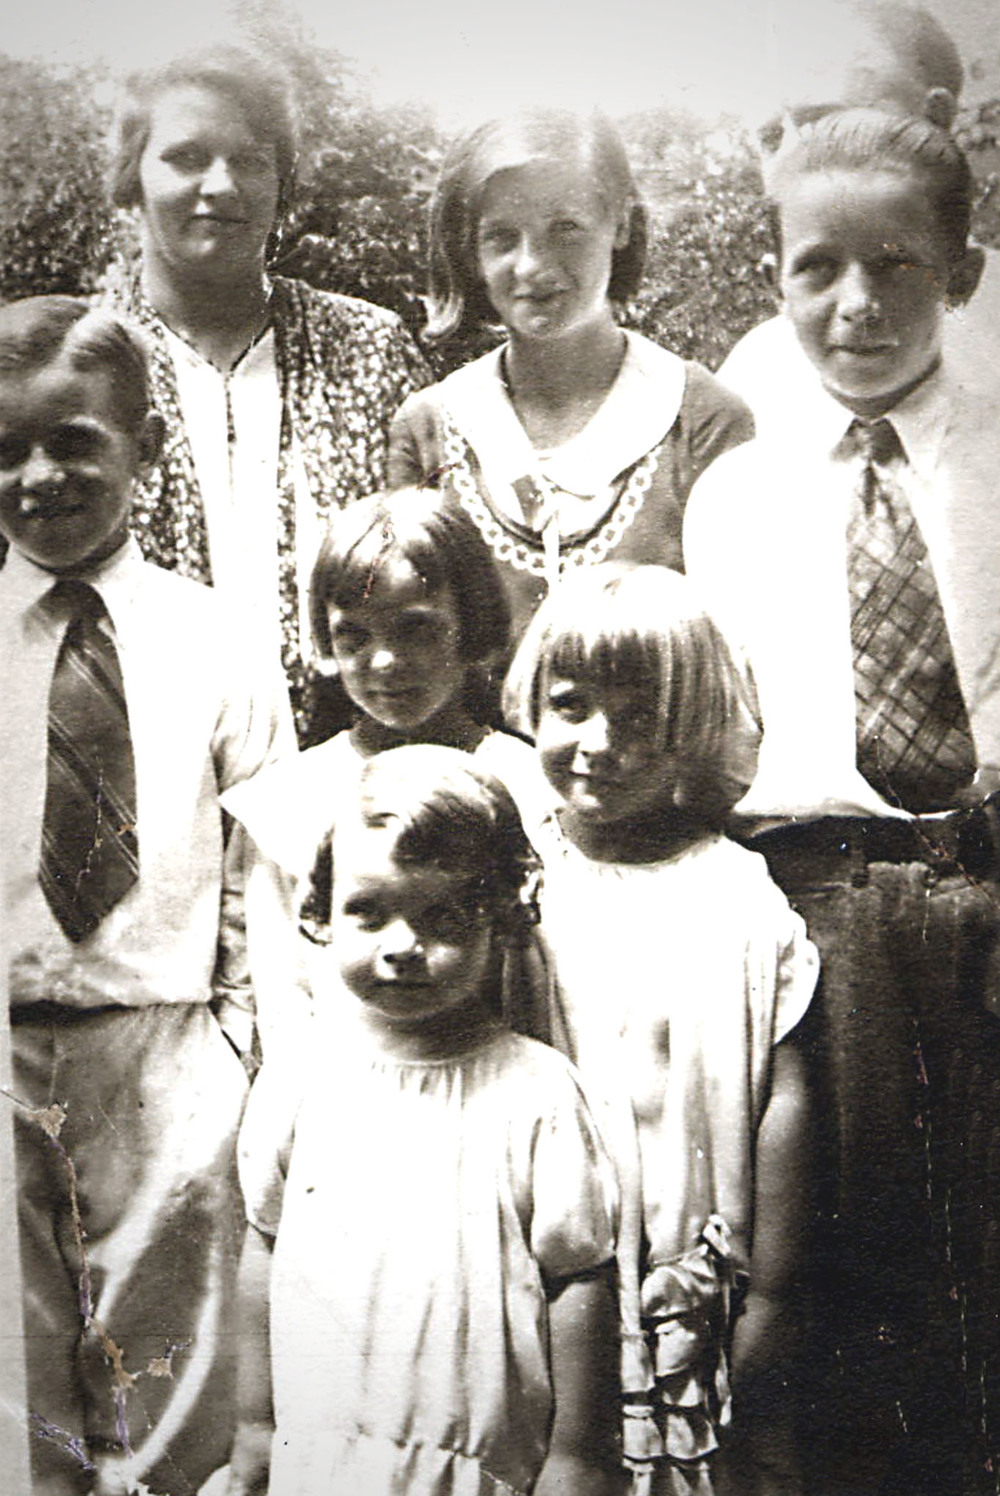 This is my mom's family, before her younger brother Don was born. My mom is the smallest girl in the foreground.